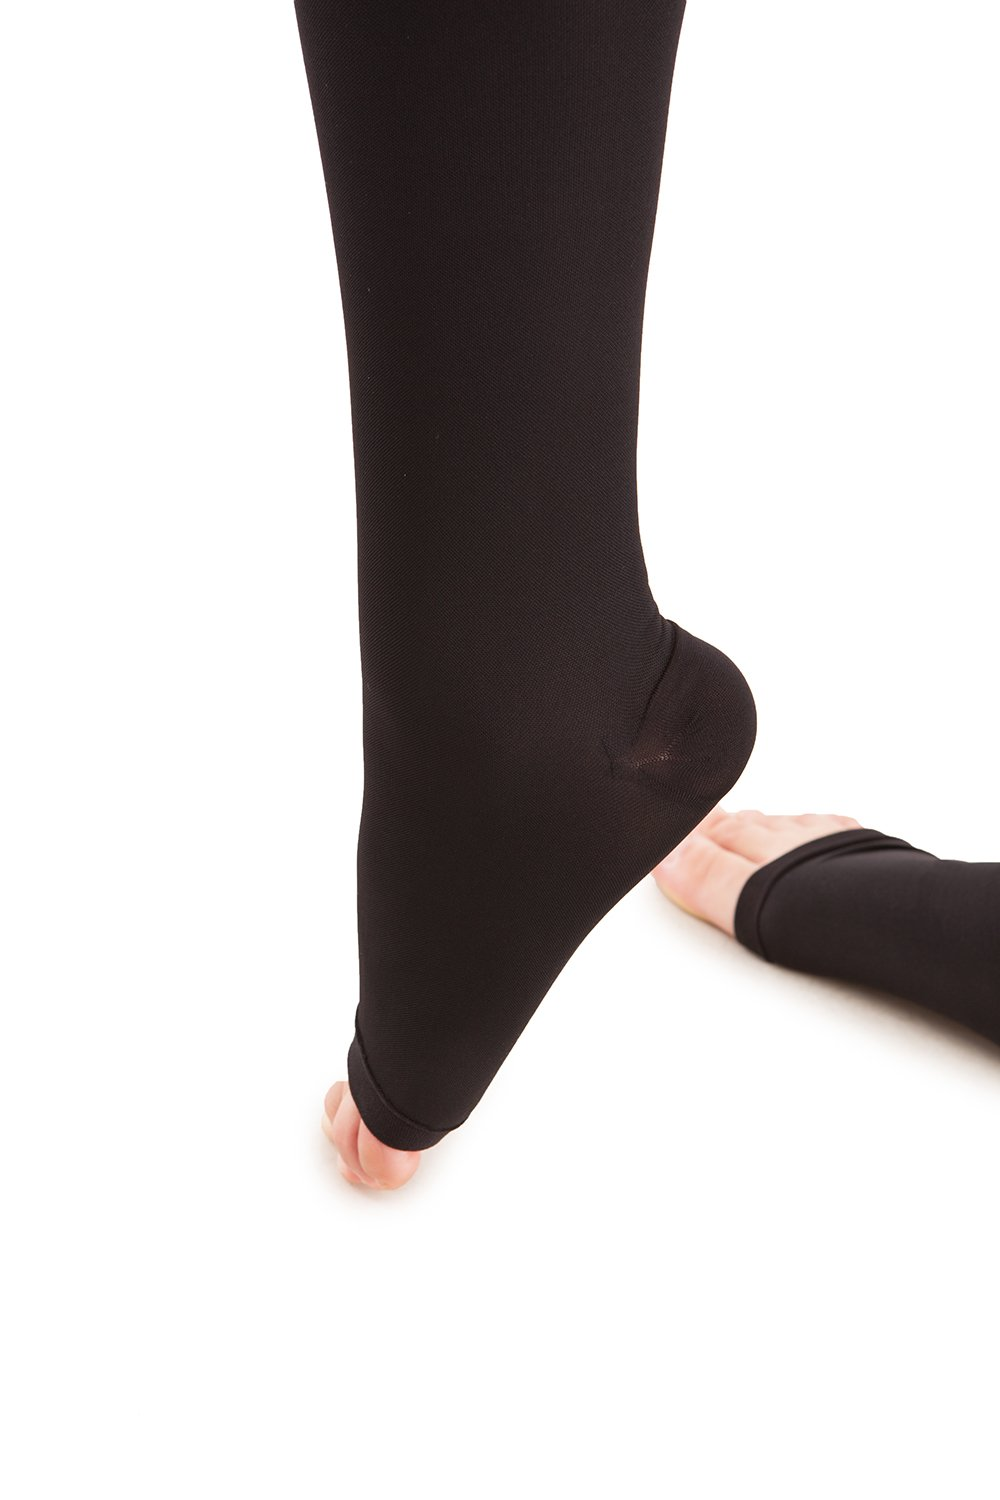 Microfiber Open Toe Knee Highs - Strong Compression - 25 to 35 mmHg - Gabrialla